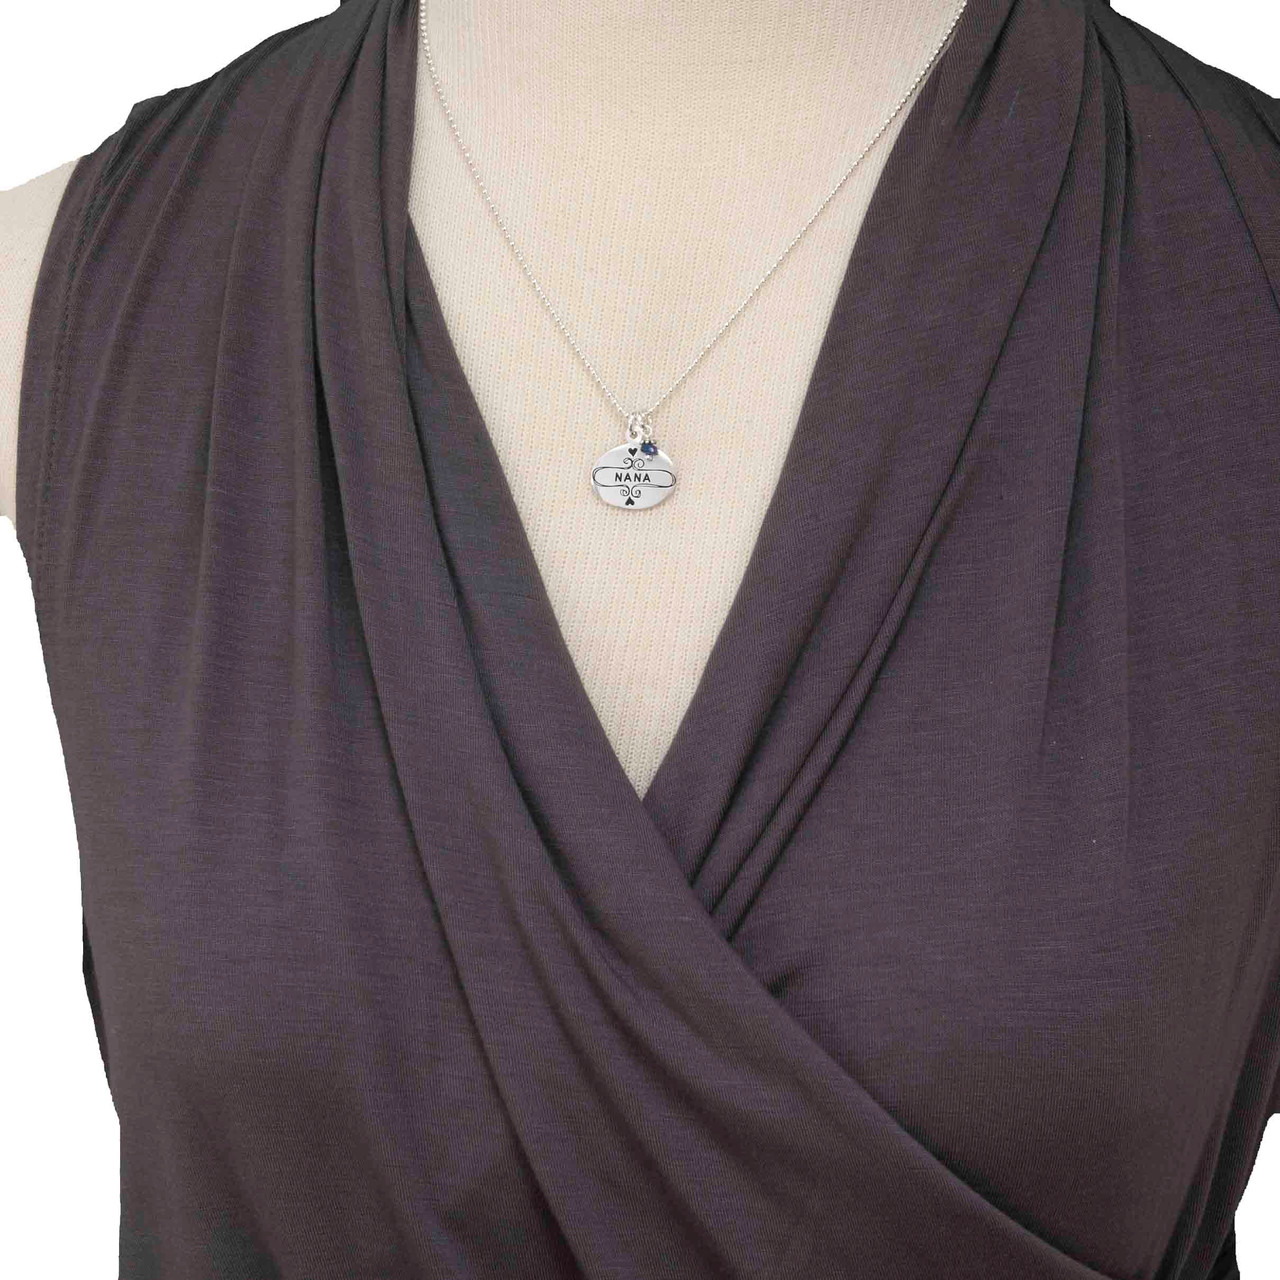 Sterling Silver Nana Necklace, shown with birthstone close on a model